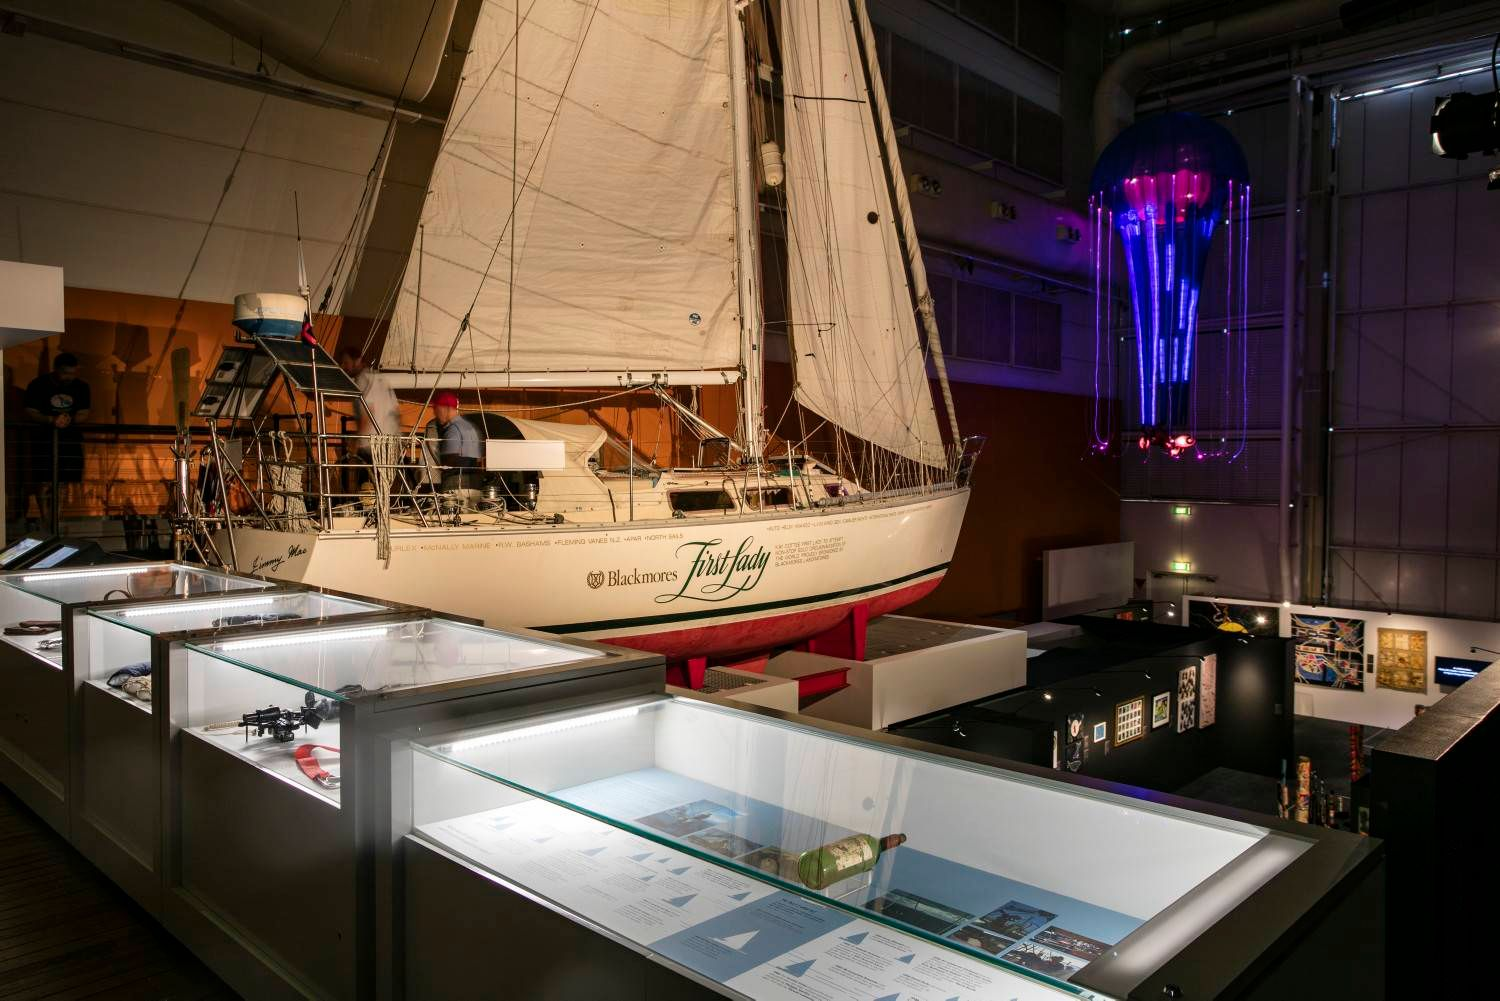 The National Maritime Museum is a vital institution for preserving Australia's seafaring past.